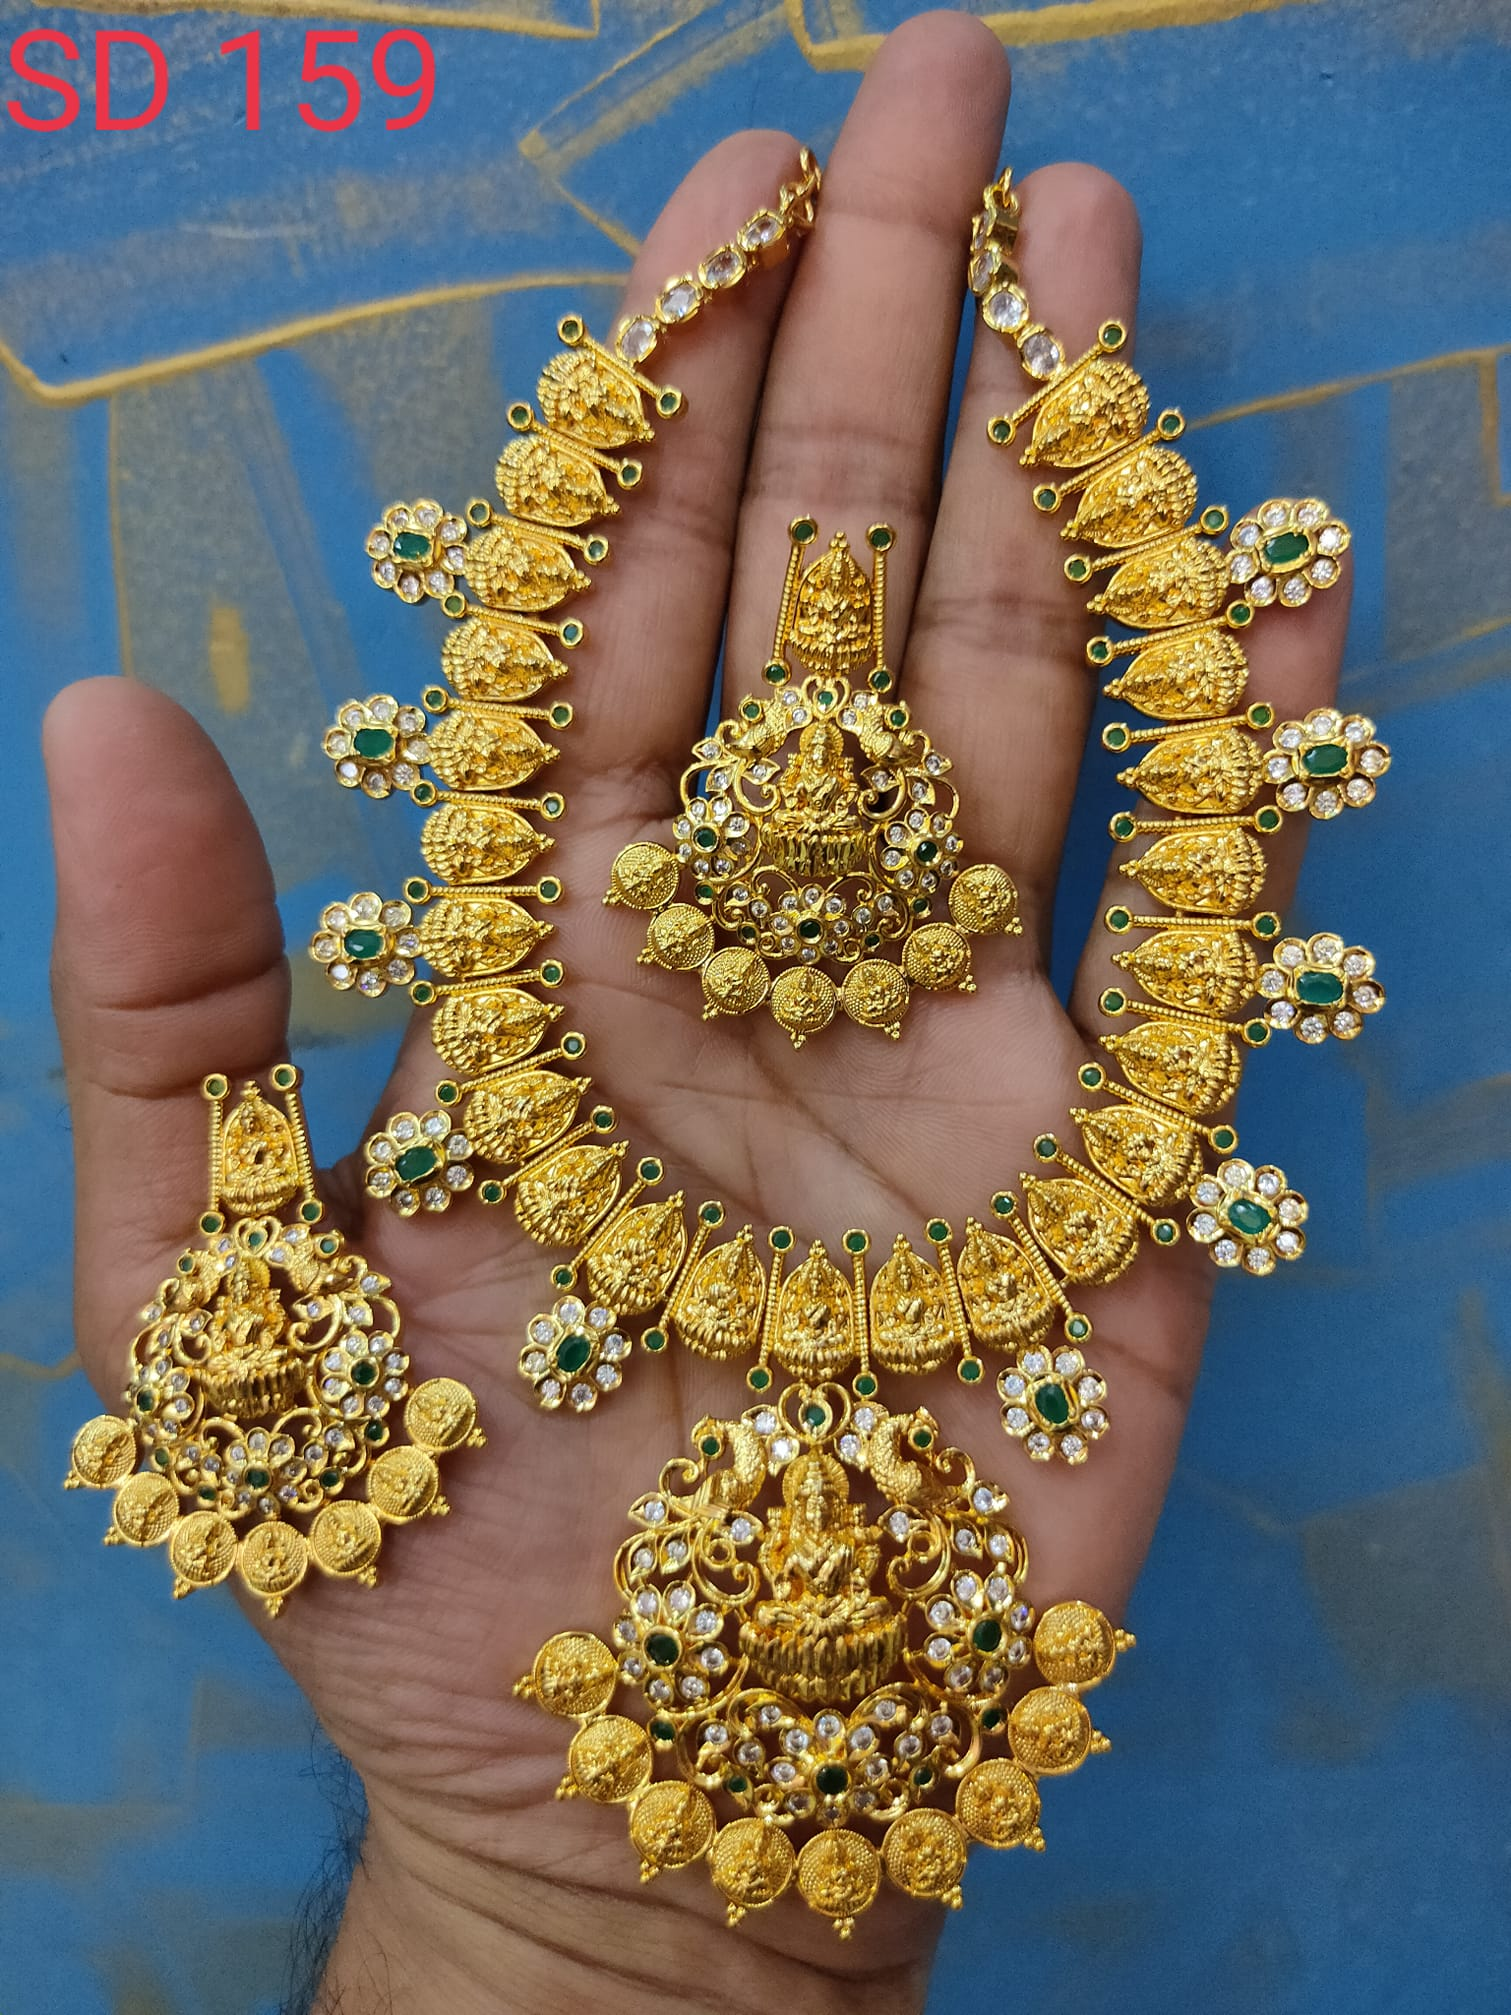 Beautiful Neckset price1790/- free shipping What's app 8897313363 one gram gold jewellery sets 1 gram gold jewellery wholesale online 1 gm gold chain online